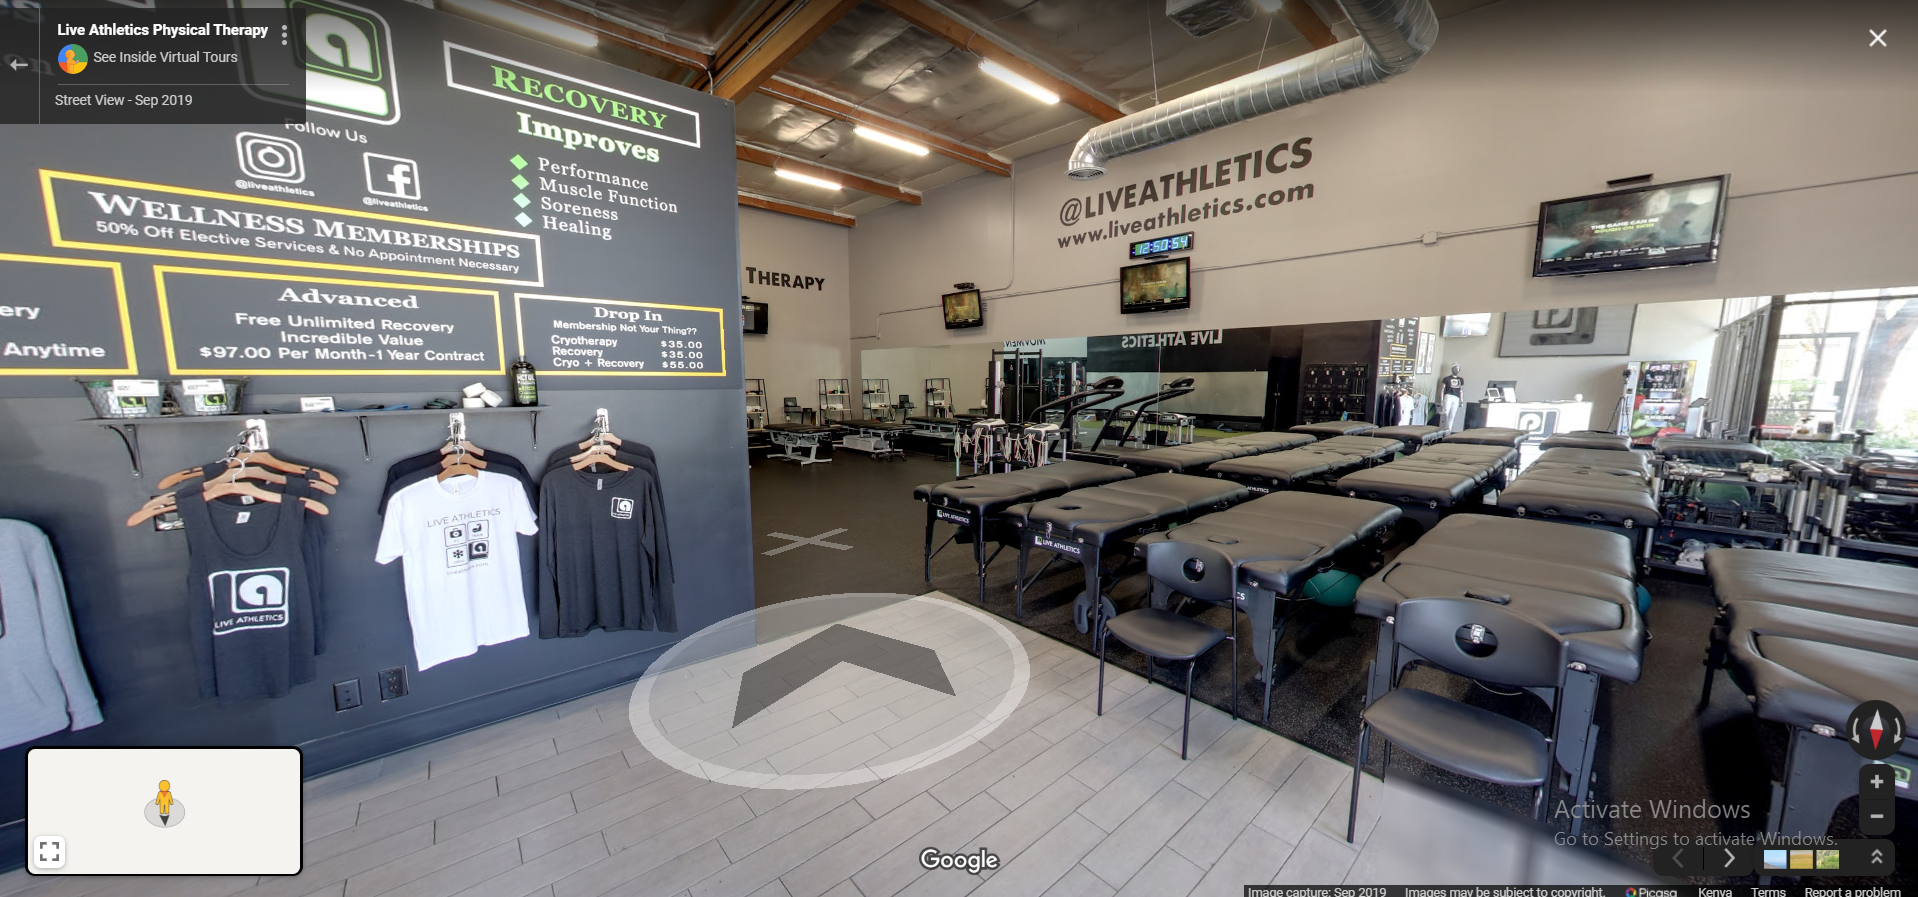 Live Athletics Physical Therapy - Westlake Village